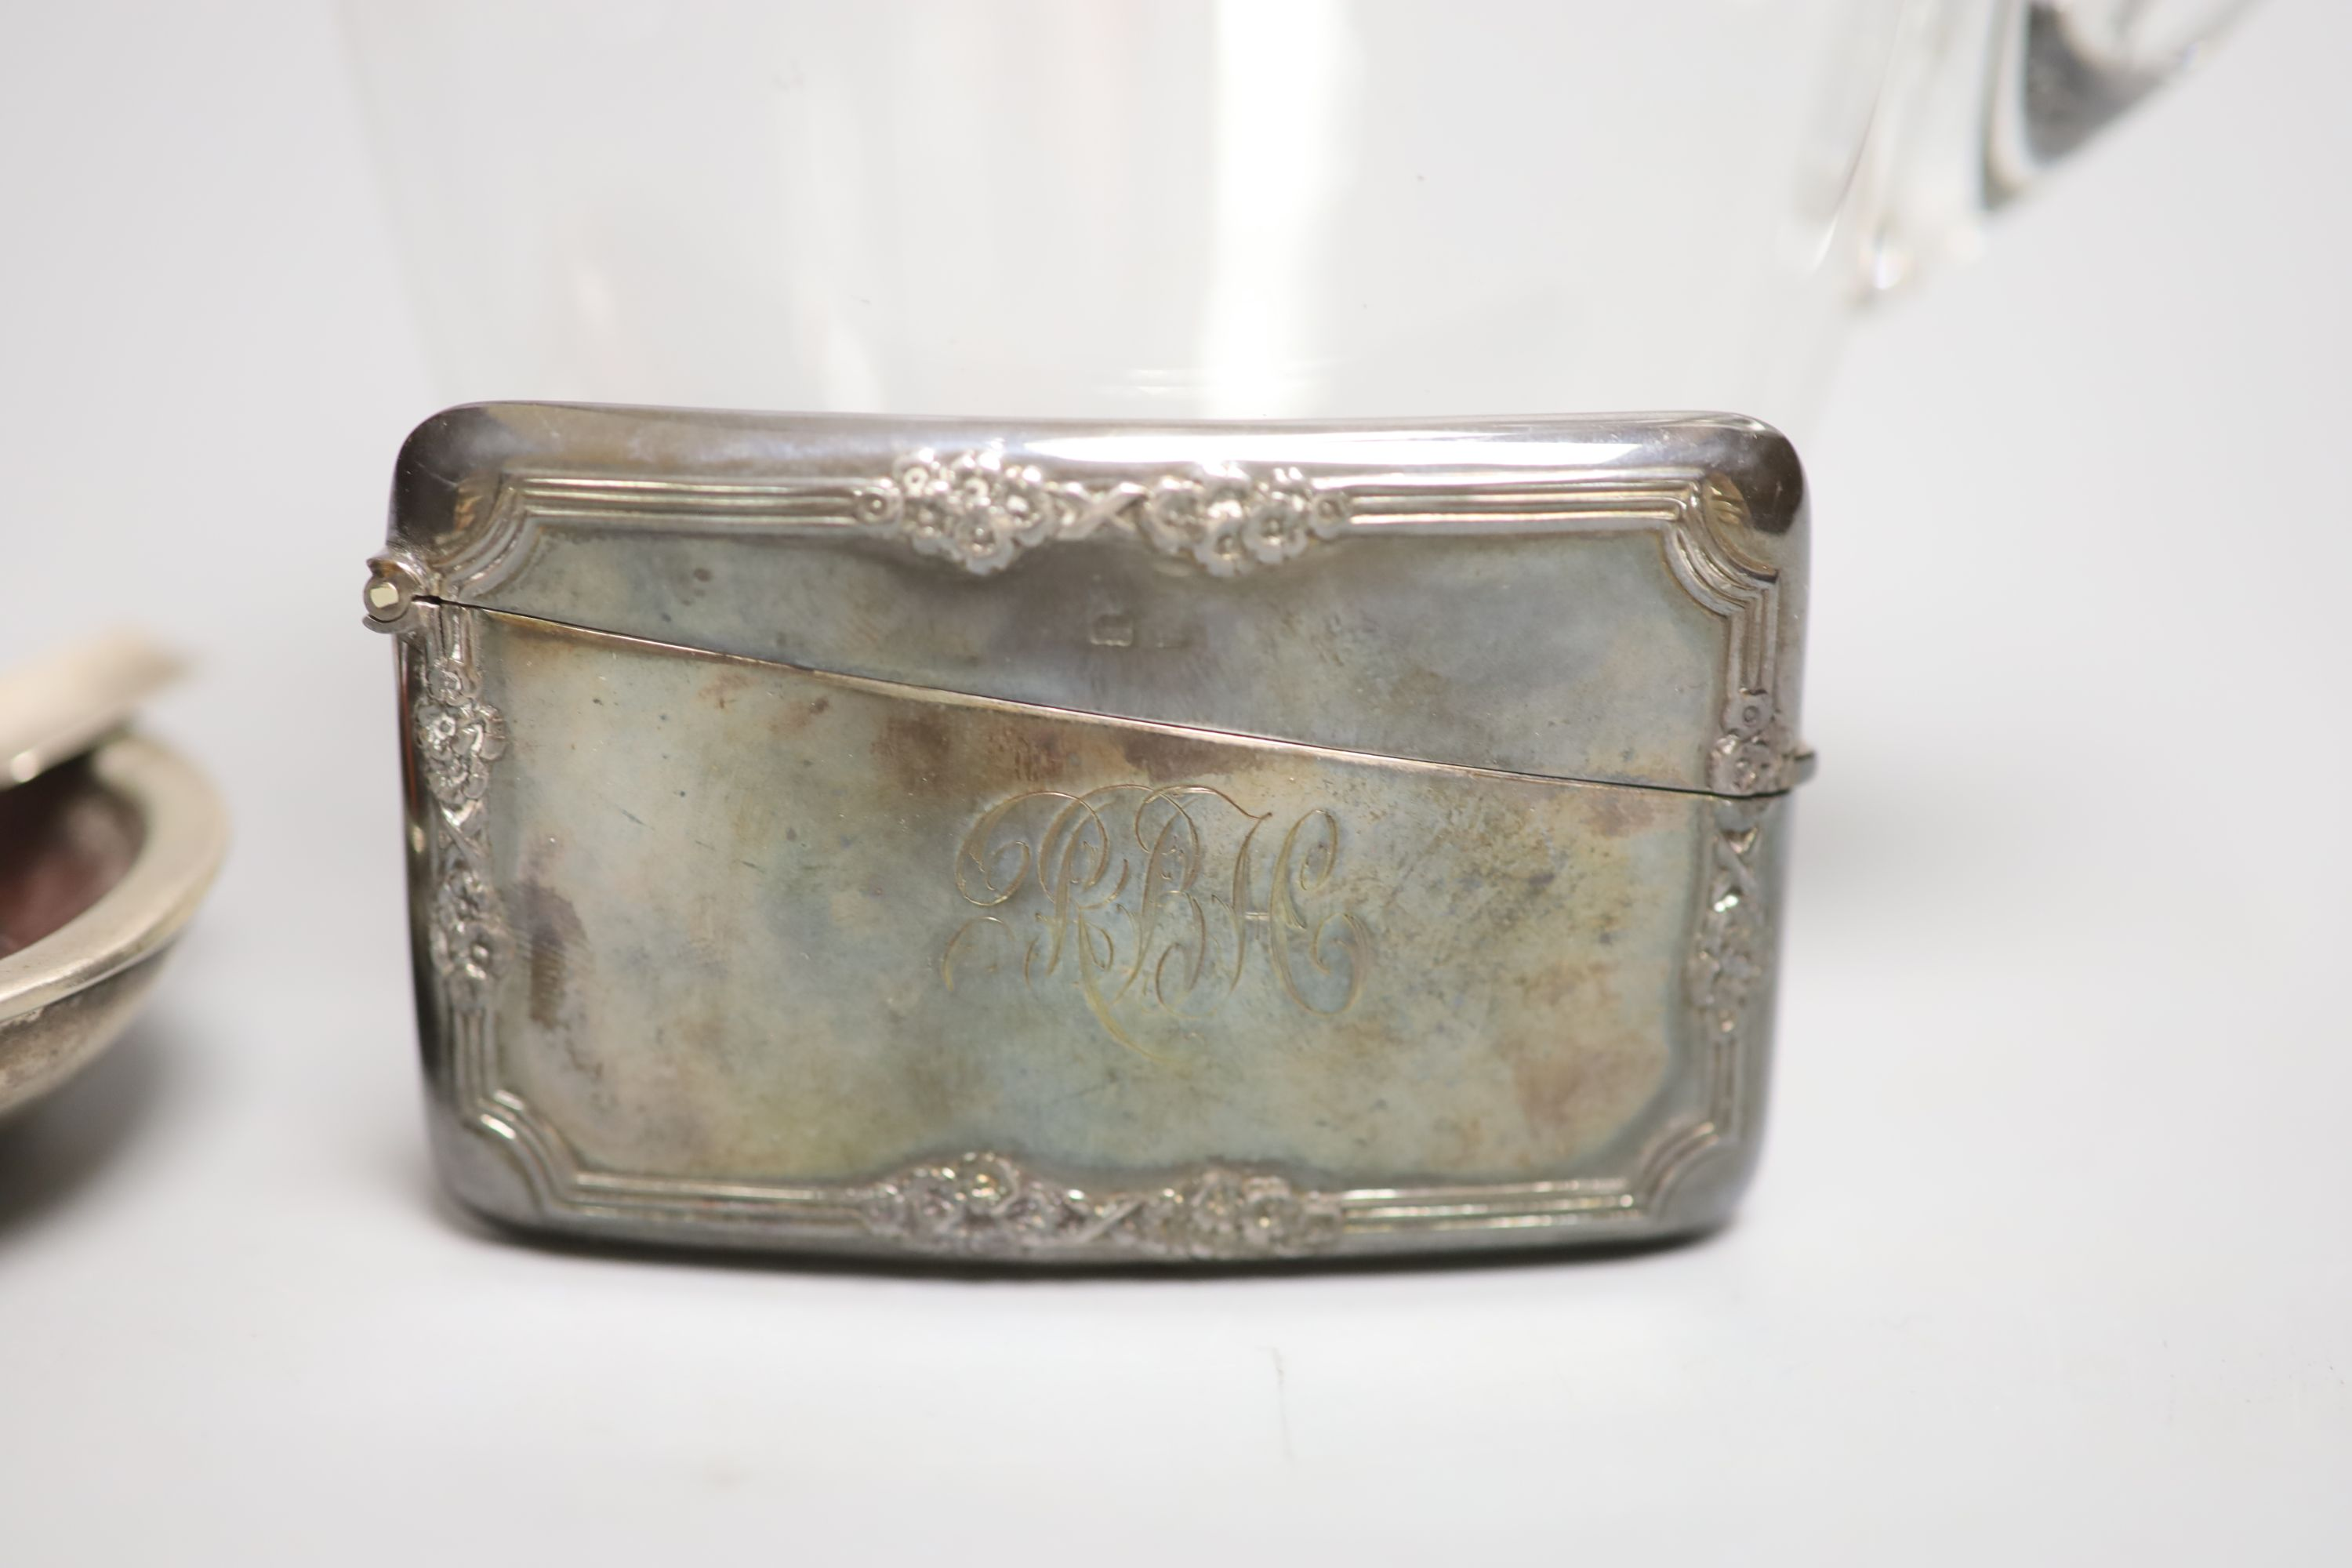 A late Victorian silver mounted glass decanter and stopper, London, 1893, 21.5cm, a silver card case - Image 3 of 4